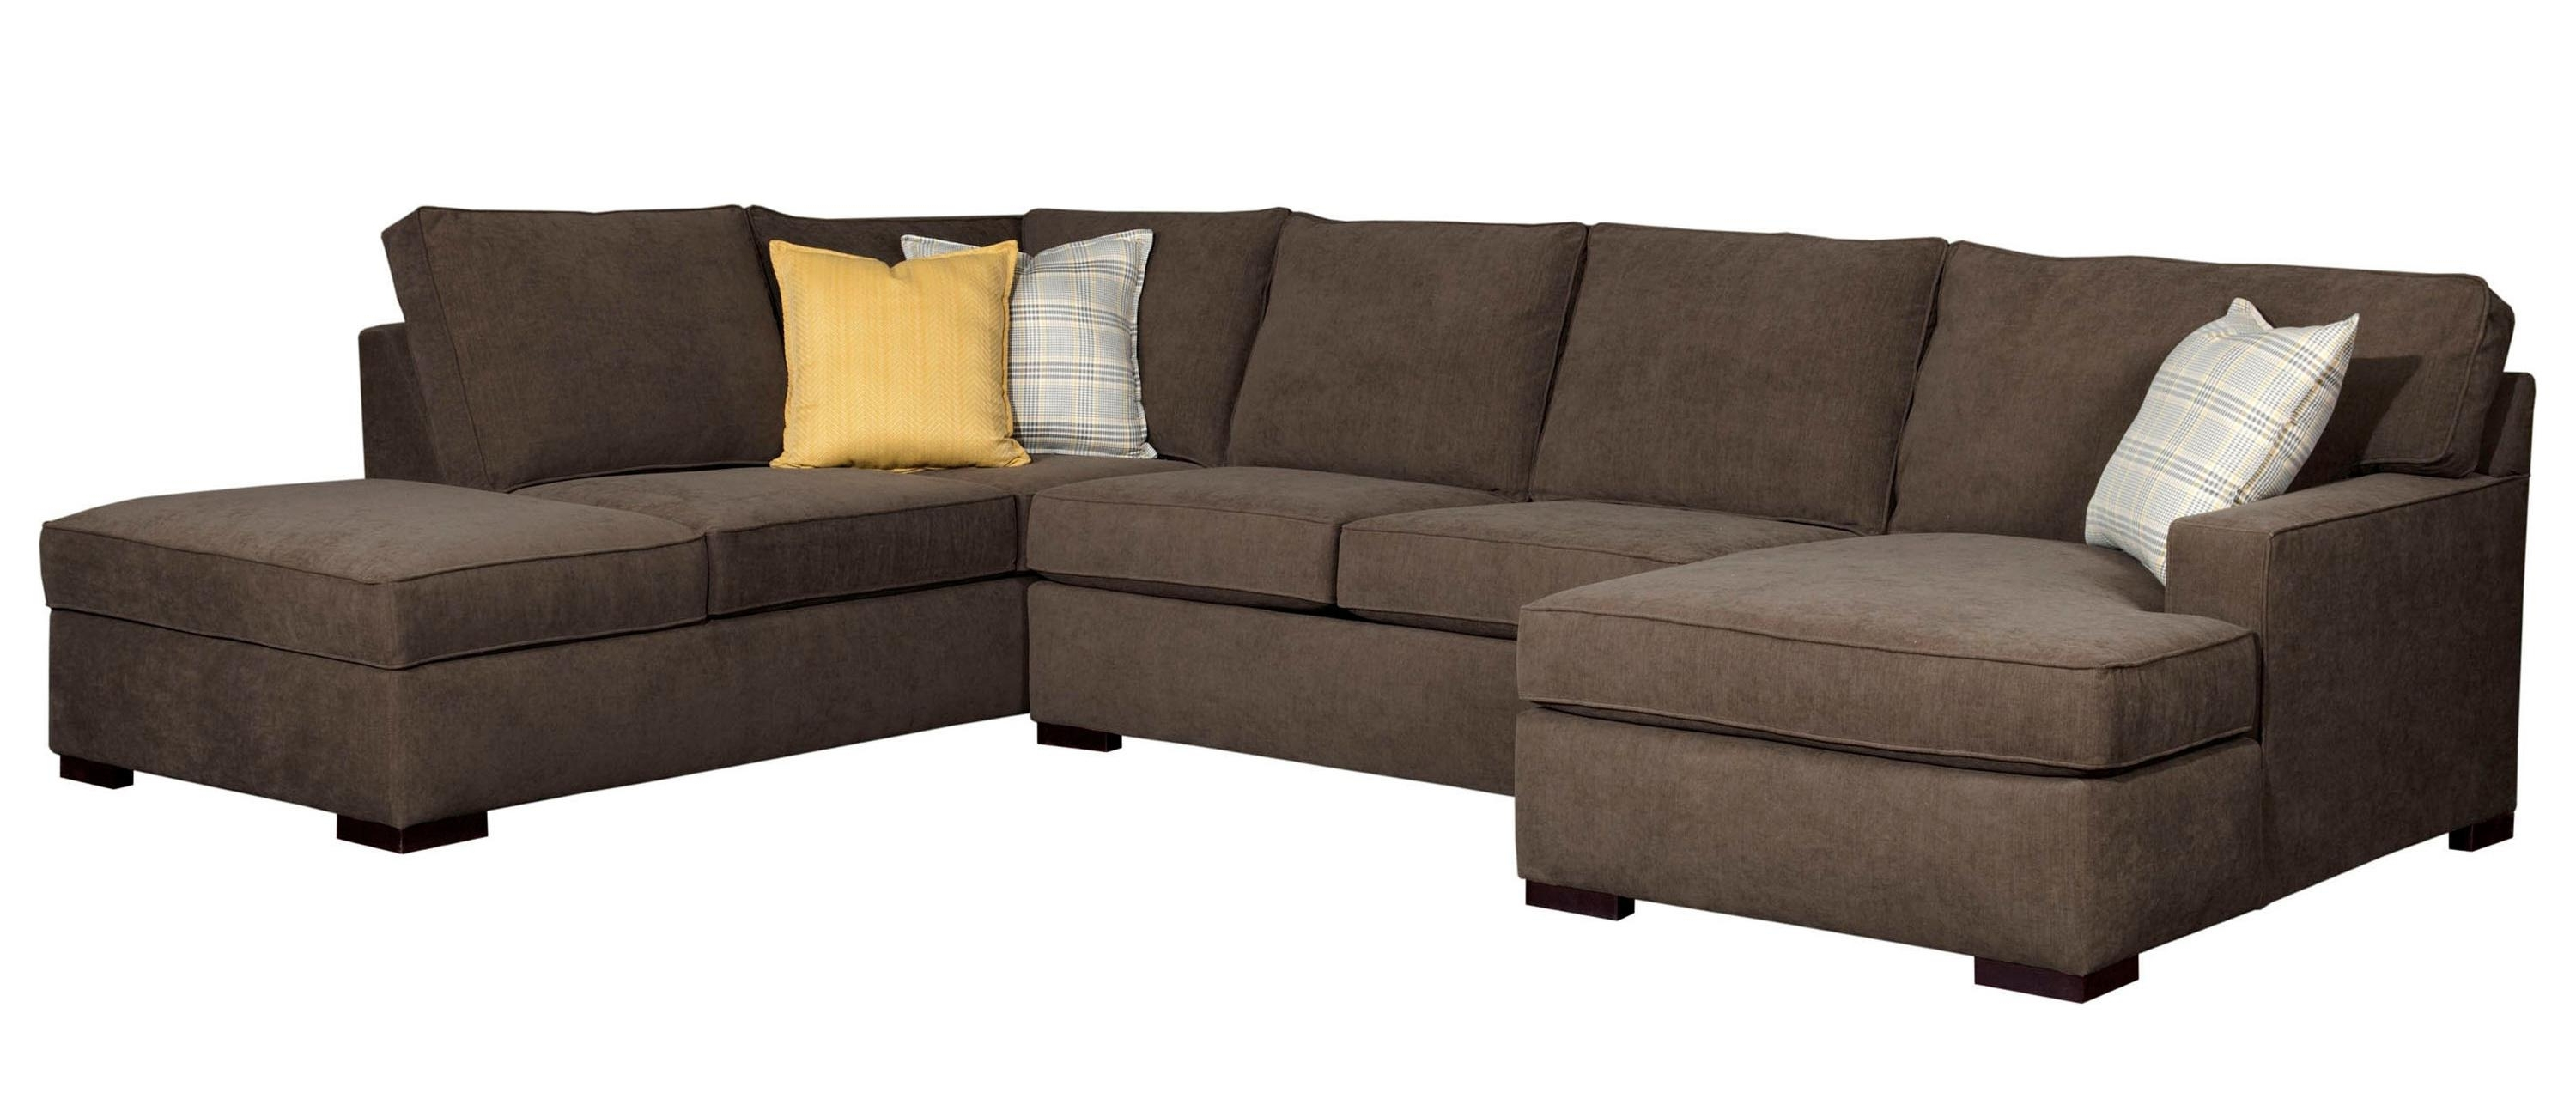 Evansville In Sectional Sofas Pertaining To Well Known Broyhill Furniture Raphael Contemporary Sectional Sofa With Laf (Gallery 9 of 15)